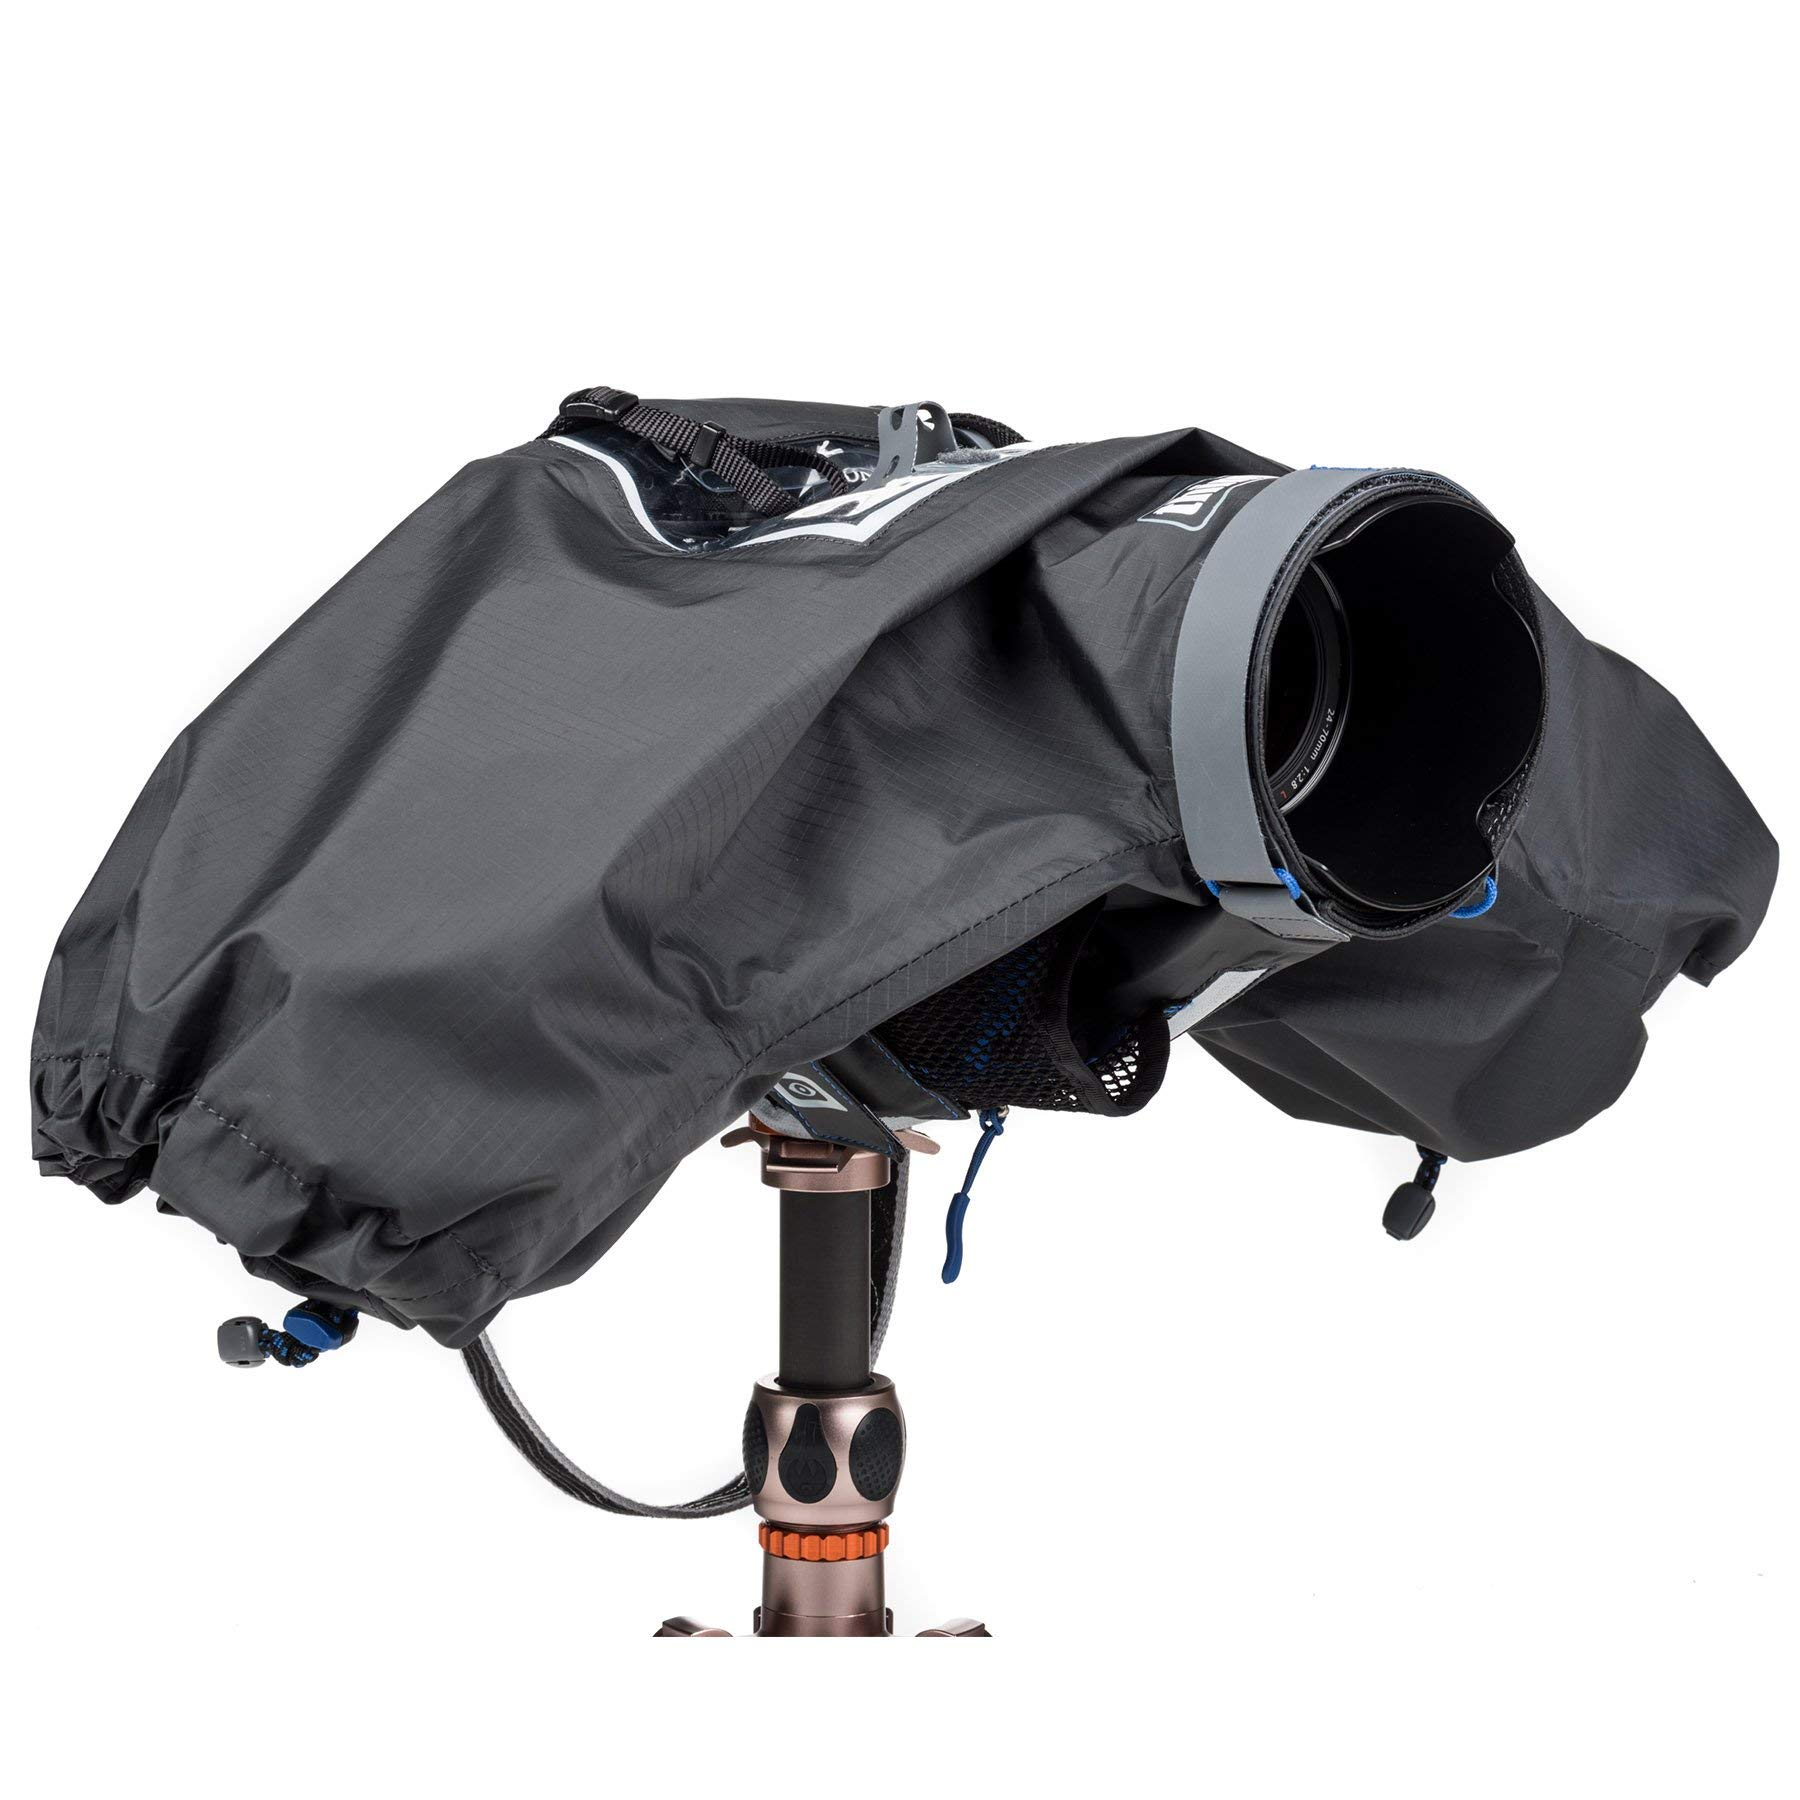 Think Tank Photo Hydrophobia M 24-70 V3 Rain Cover for Sony Alpha-Series Full-Frame mirrorless Camera with 24-70mm f/2.8 Lens